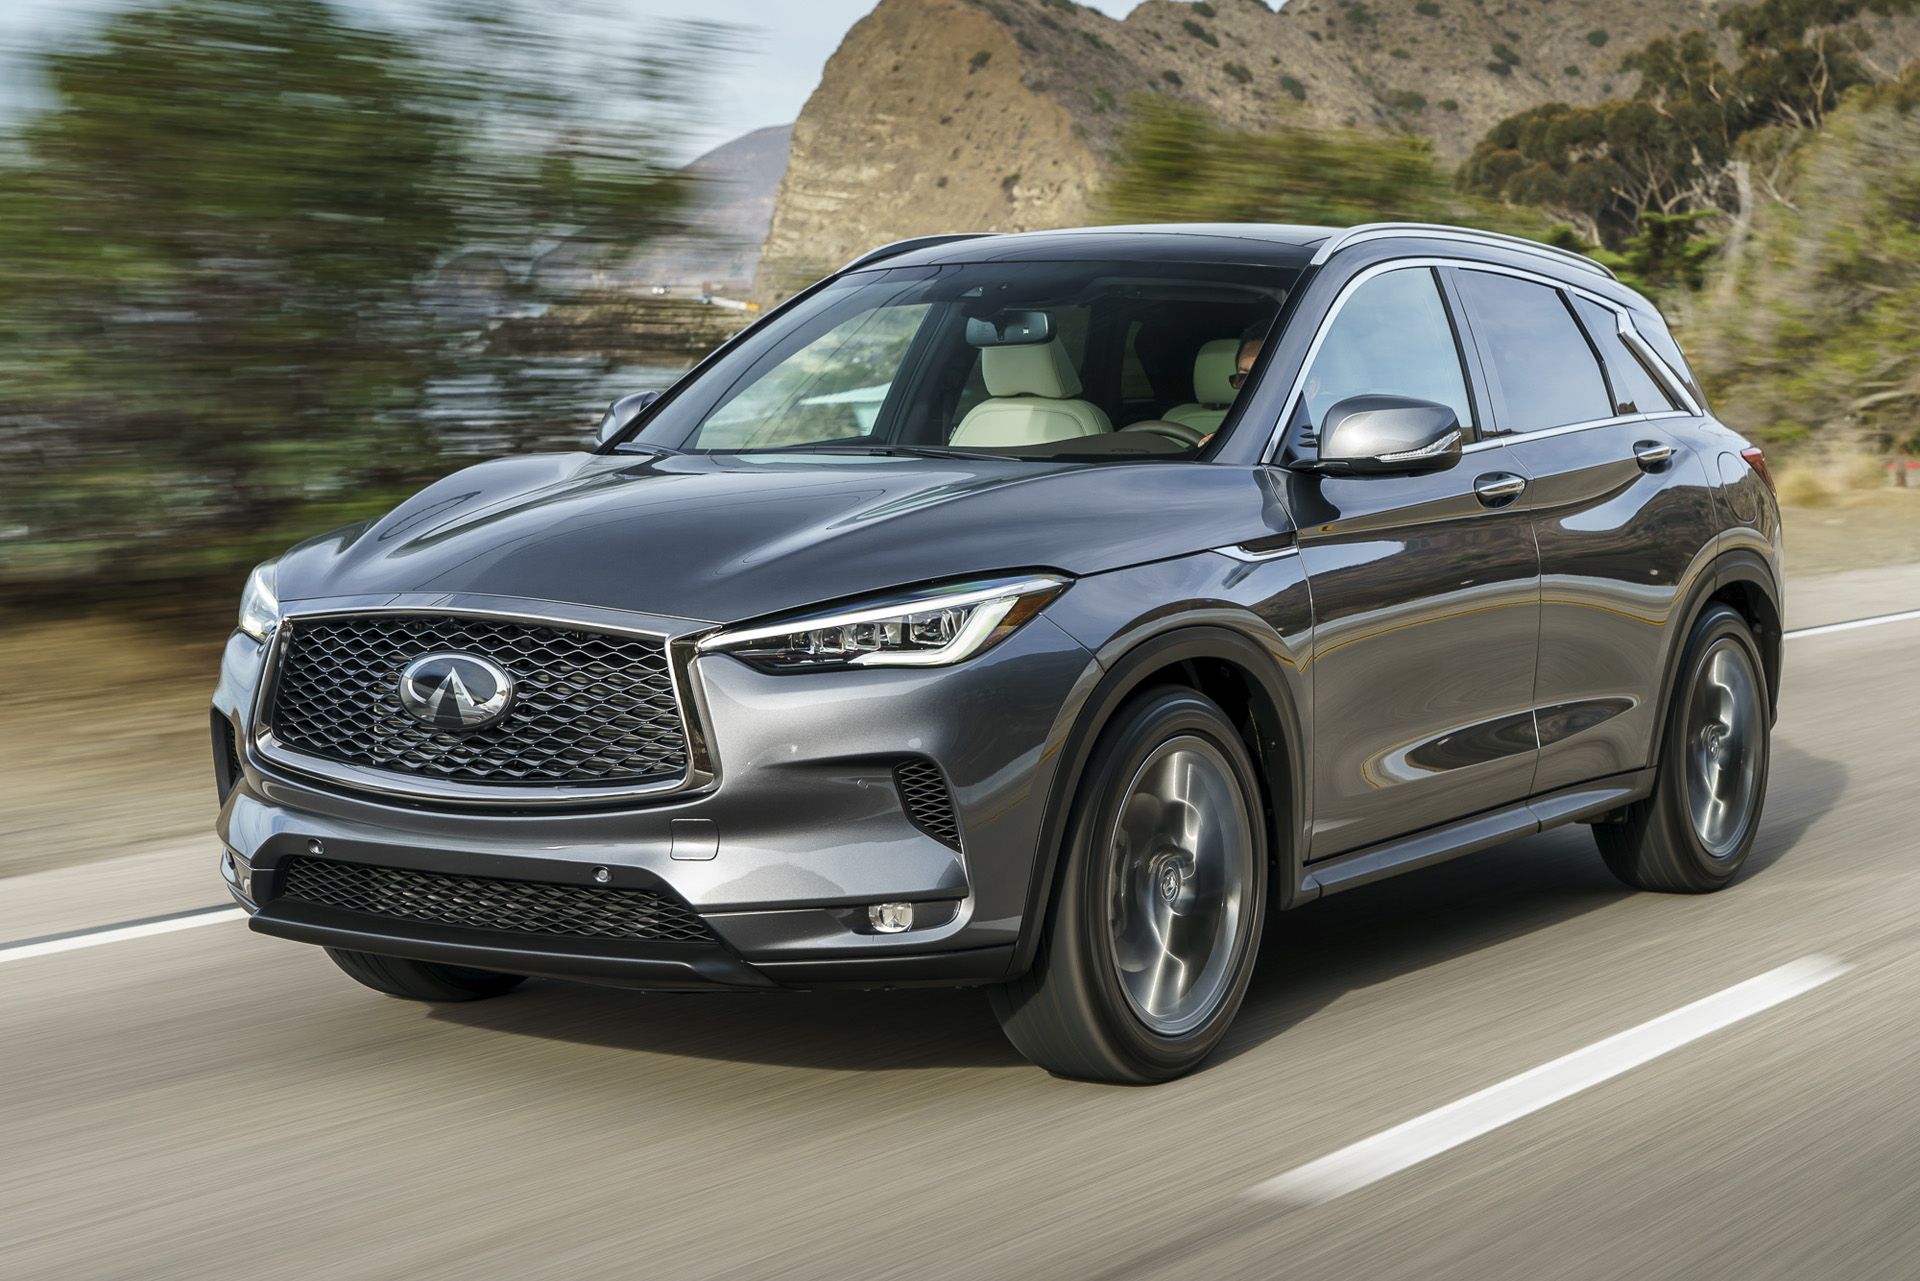 Elaborate engine: Variable-compression Infiniti yields small efficiency gains